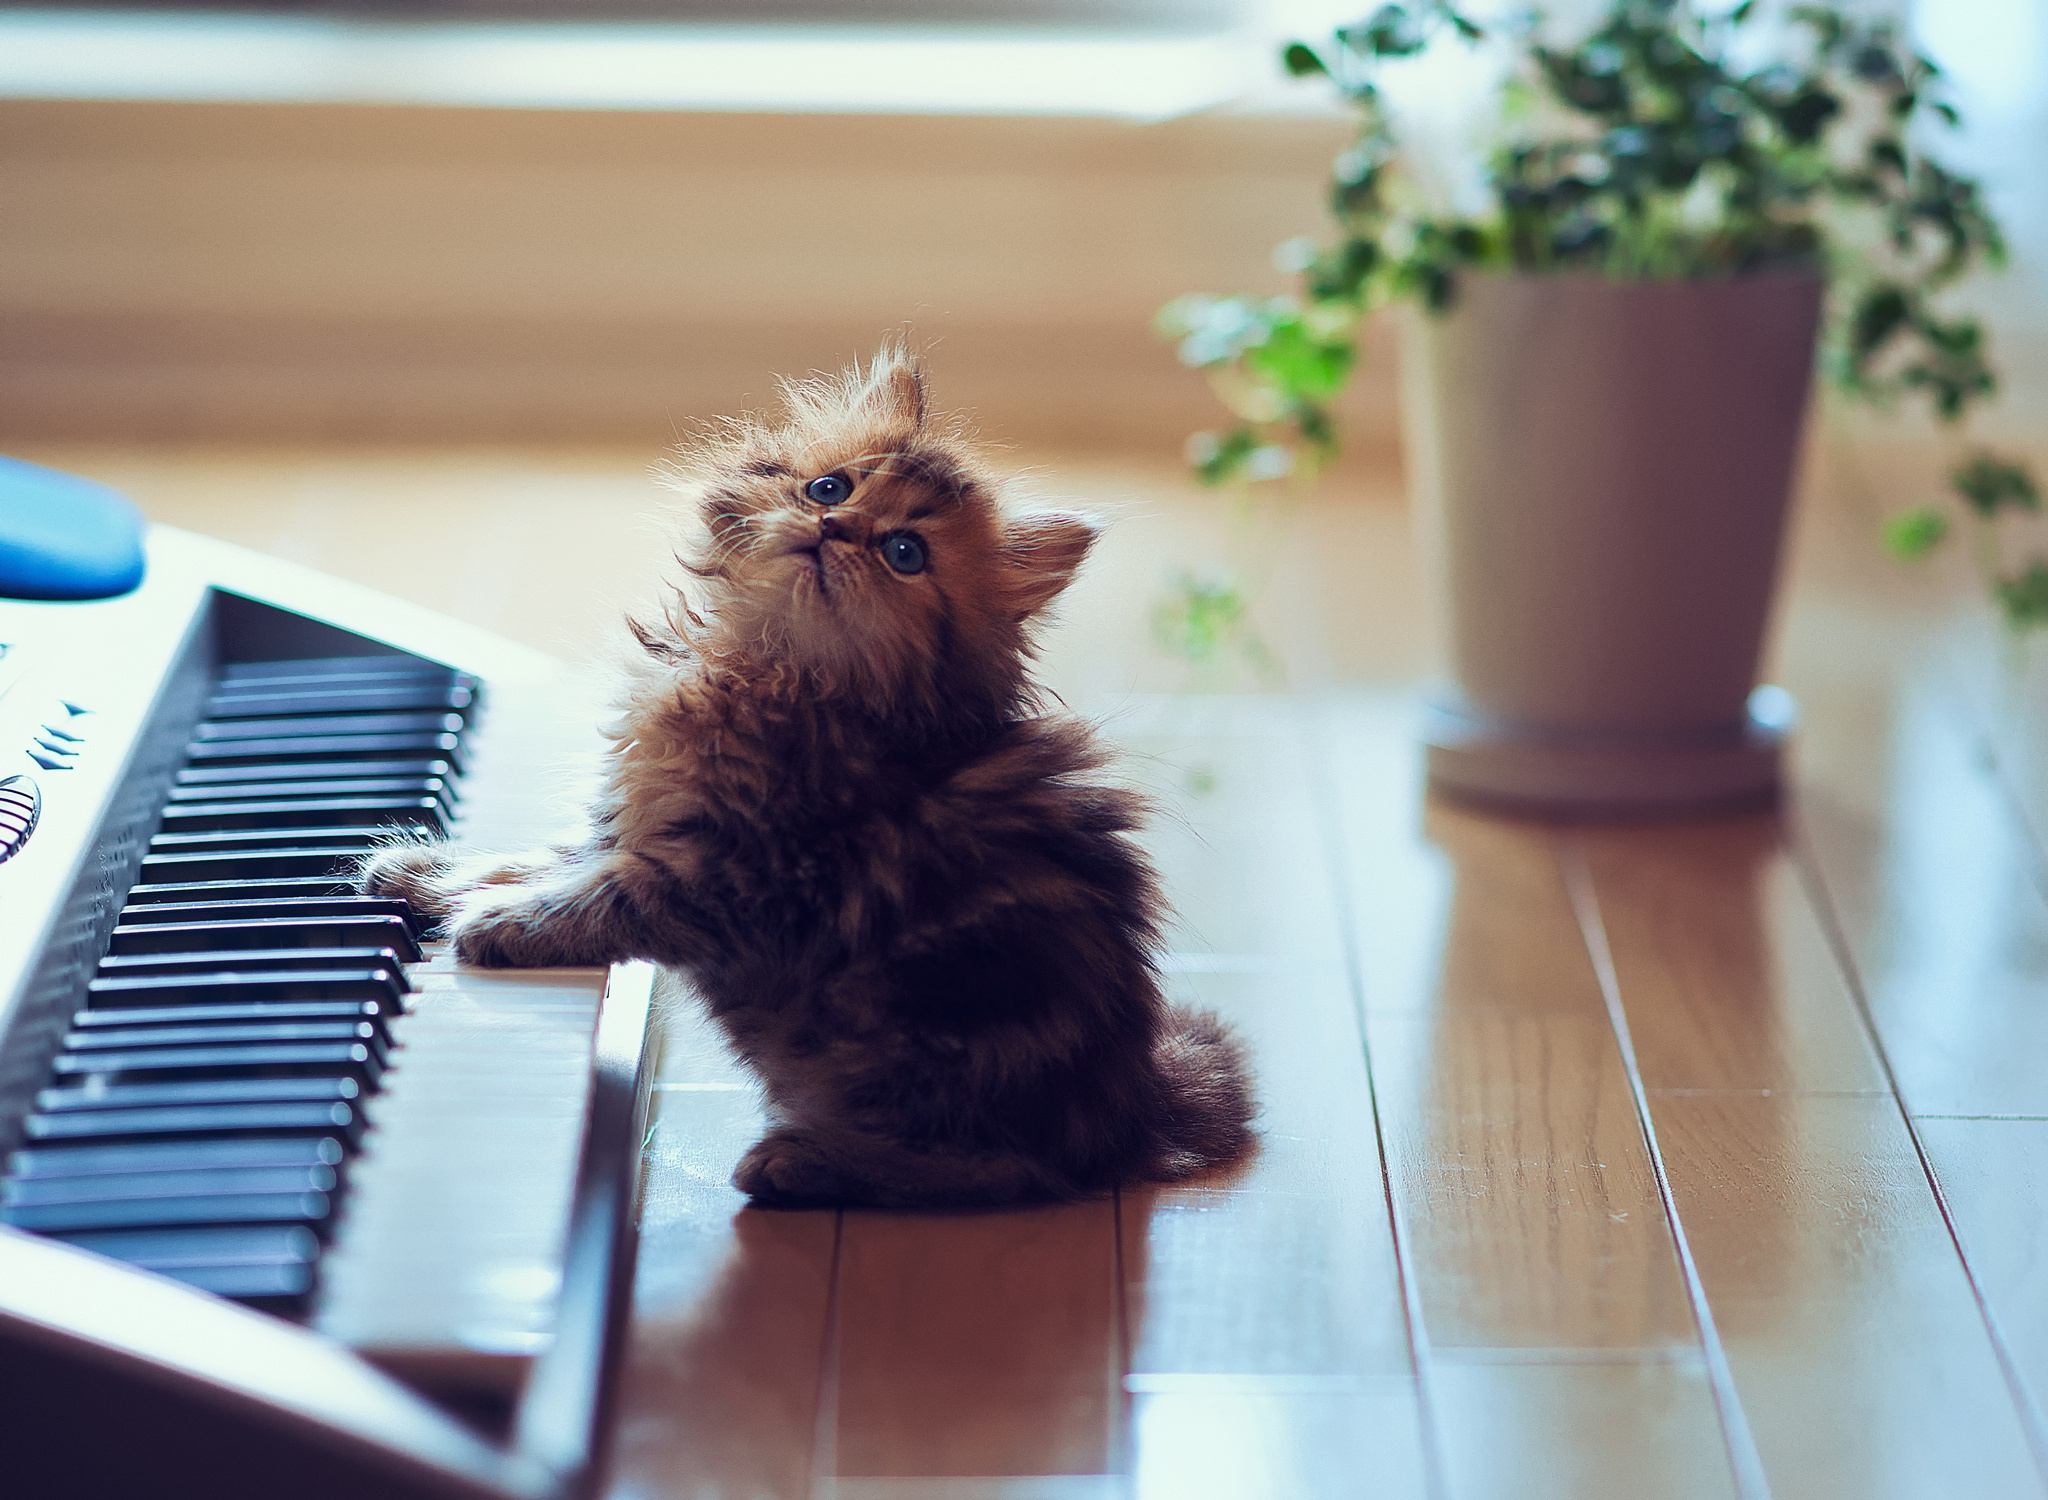 51104 download wallpaper Animals, Sit, Fluffy, Kitty, Kitten, Playful, Synthesizer, Keys, Floor screensavers and pictures for free